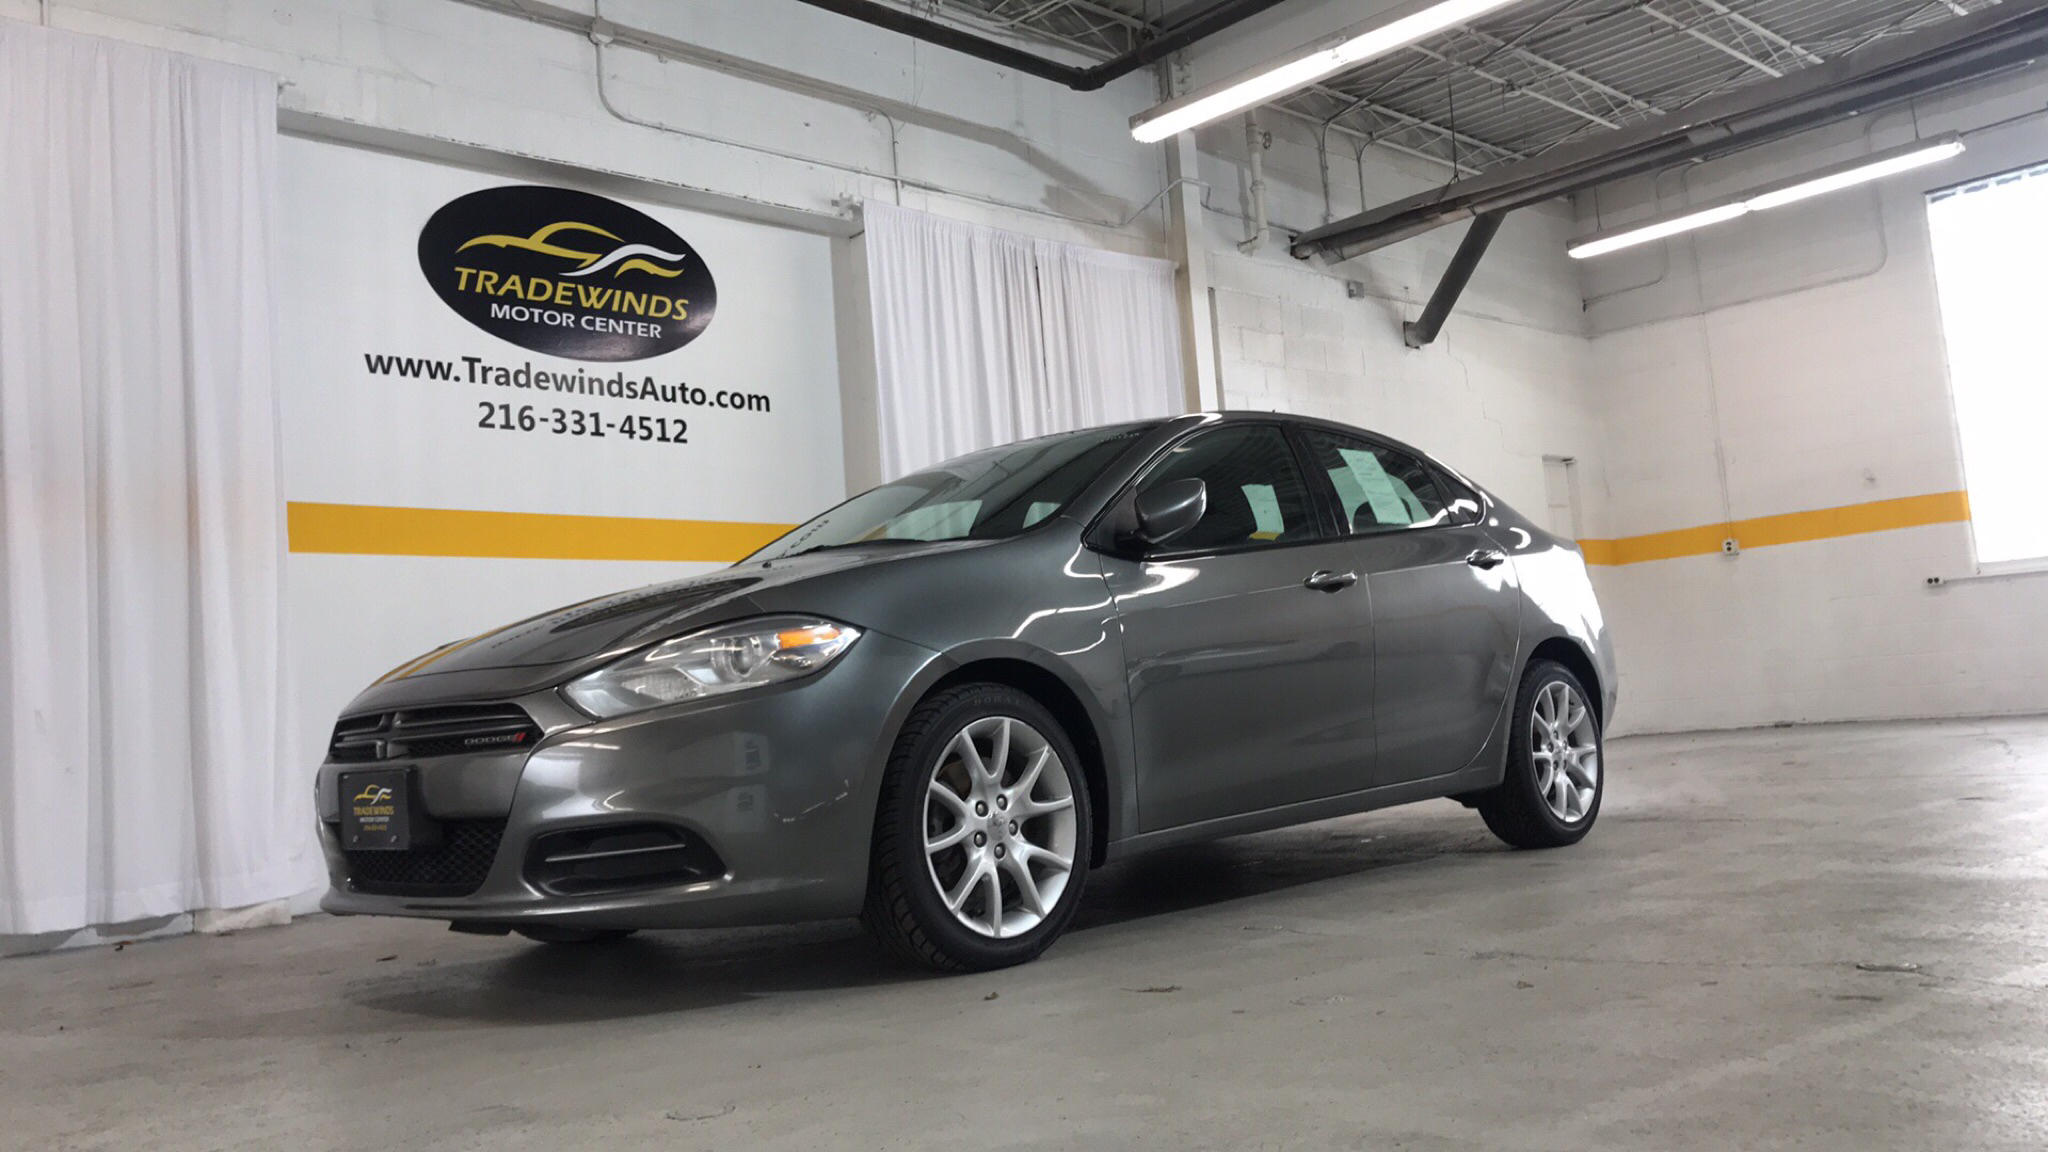 2013 DODGE DART SXT for sale at Tradewinds Motor Center